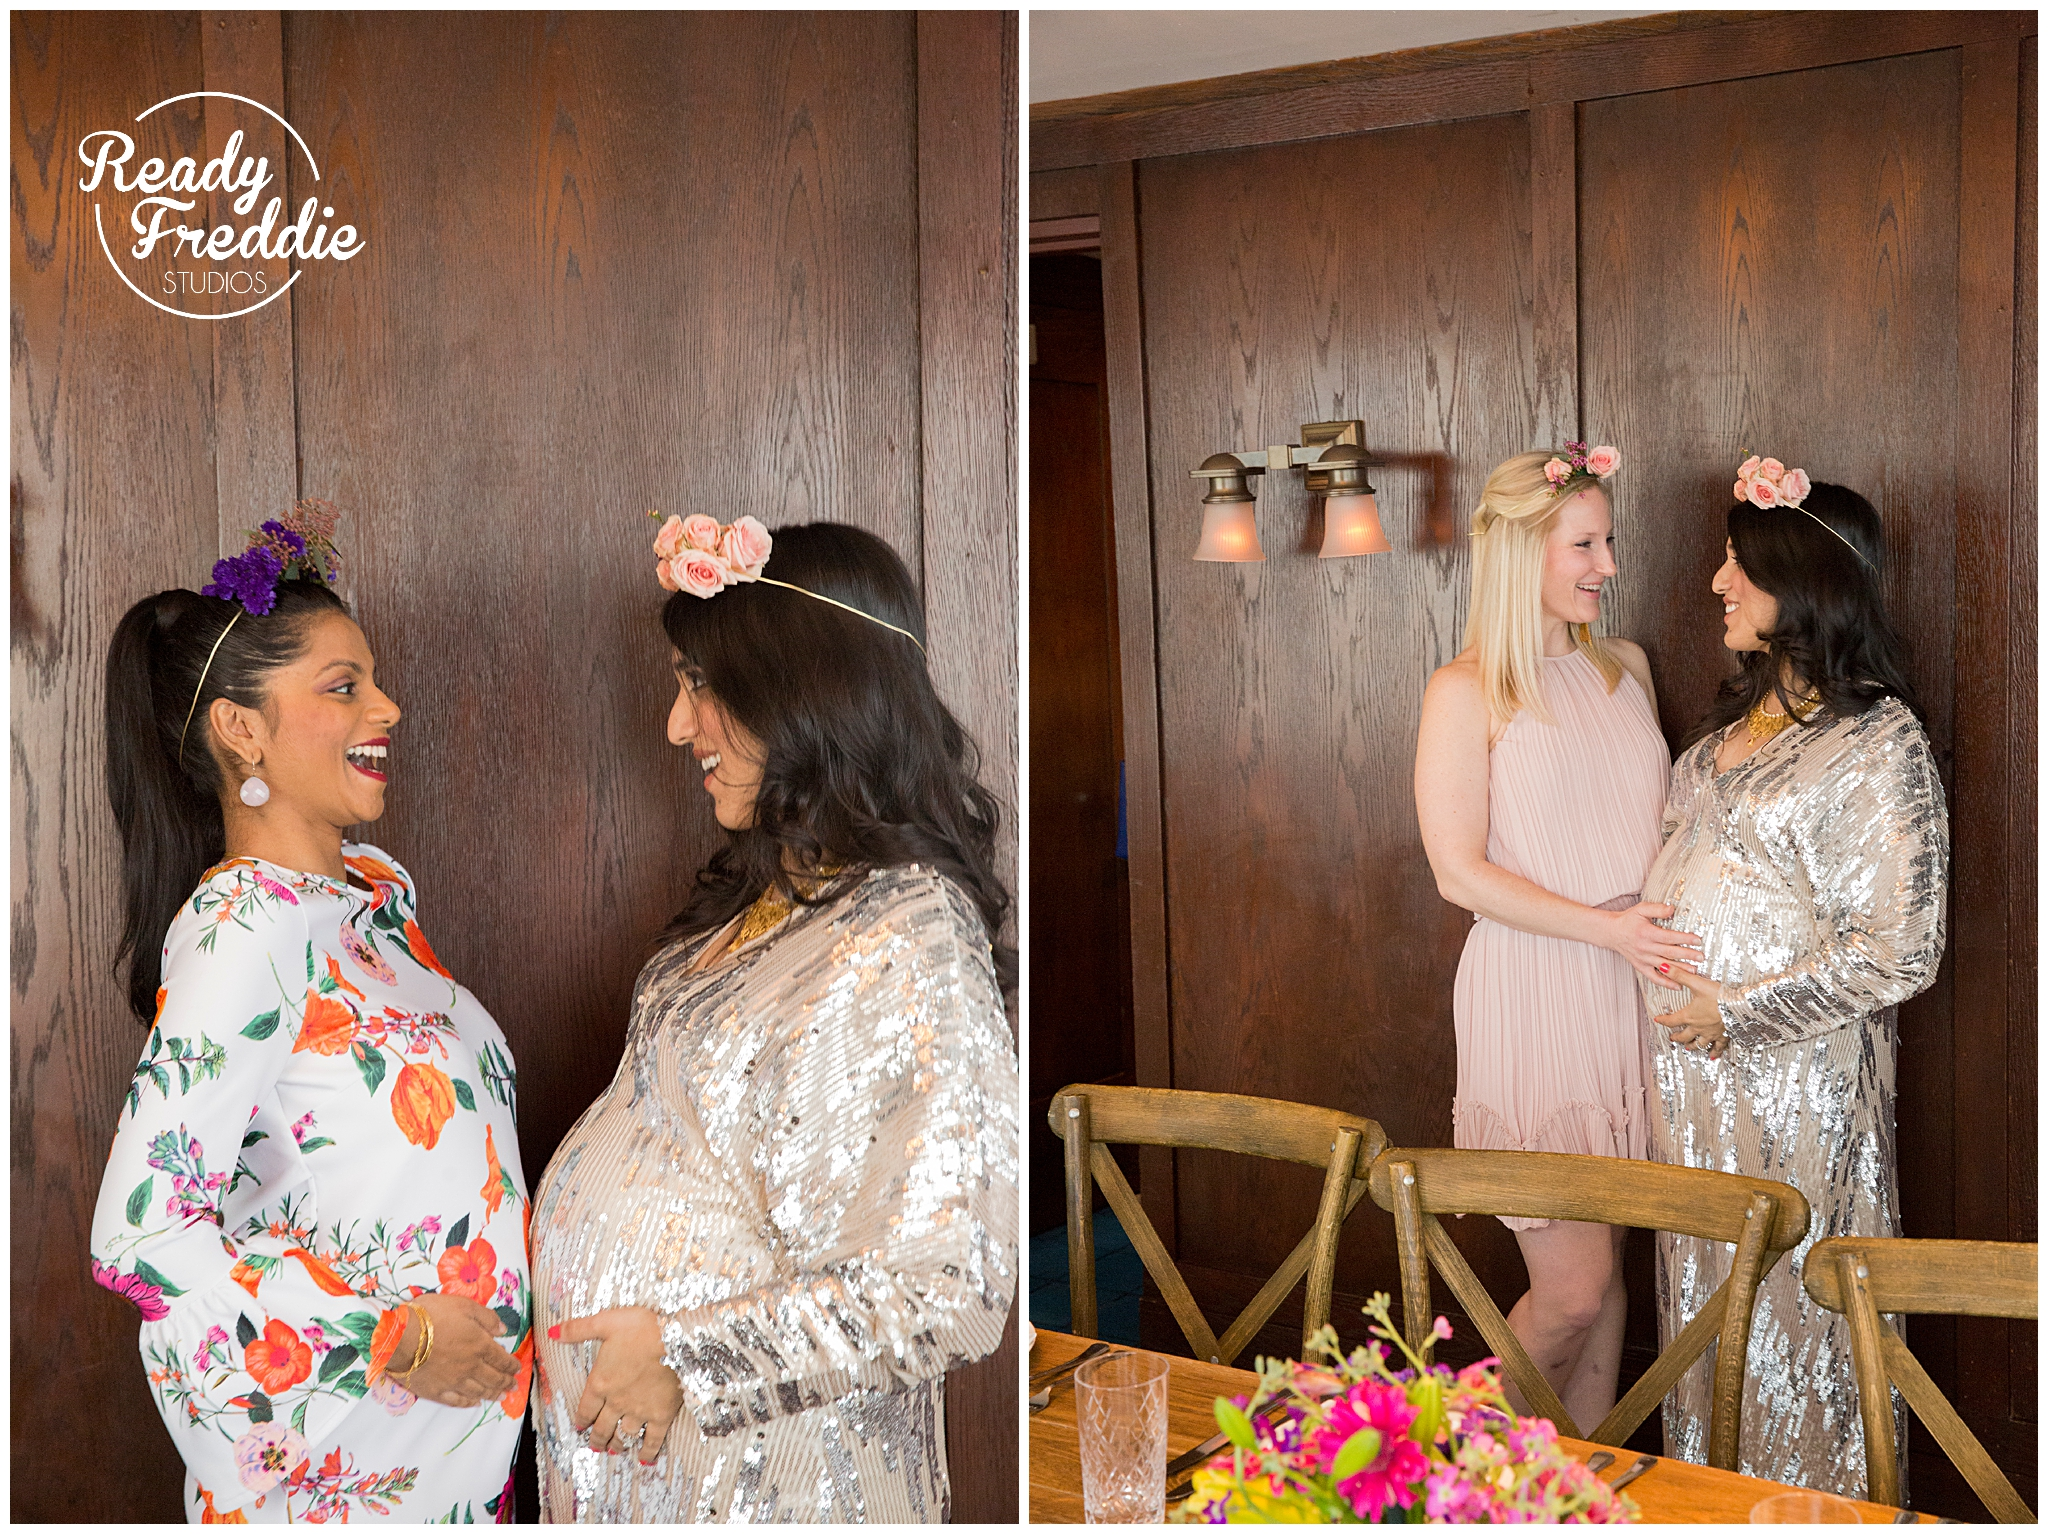 Mom to be enjoying her baby shower with her friends at the soho beach house in miami beach